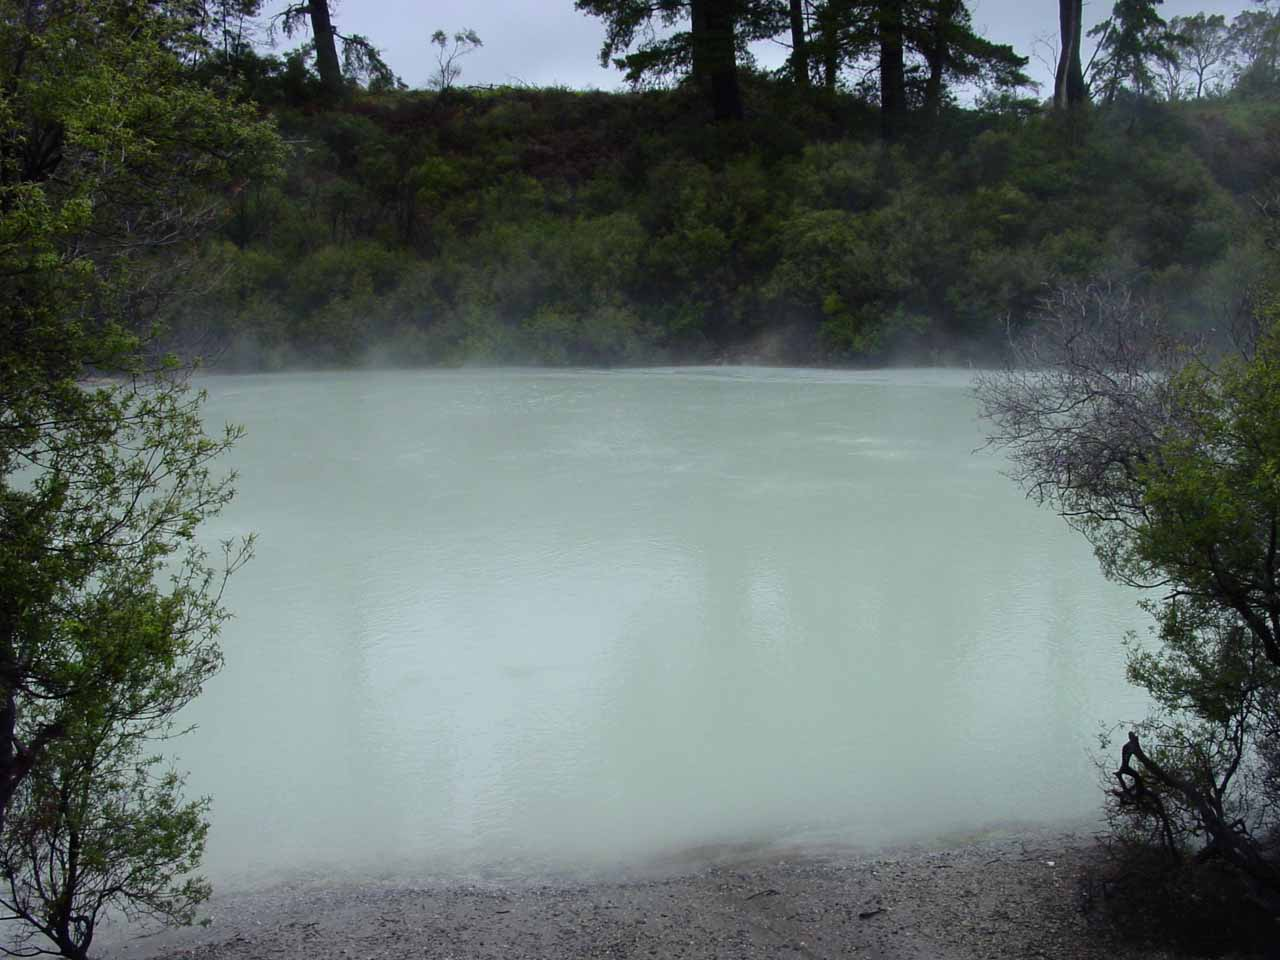 In the farthest reaches of Hell's Gate, we saw this menacing-looking highly acidic sulphur lake